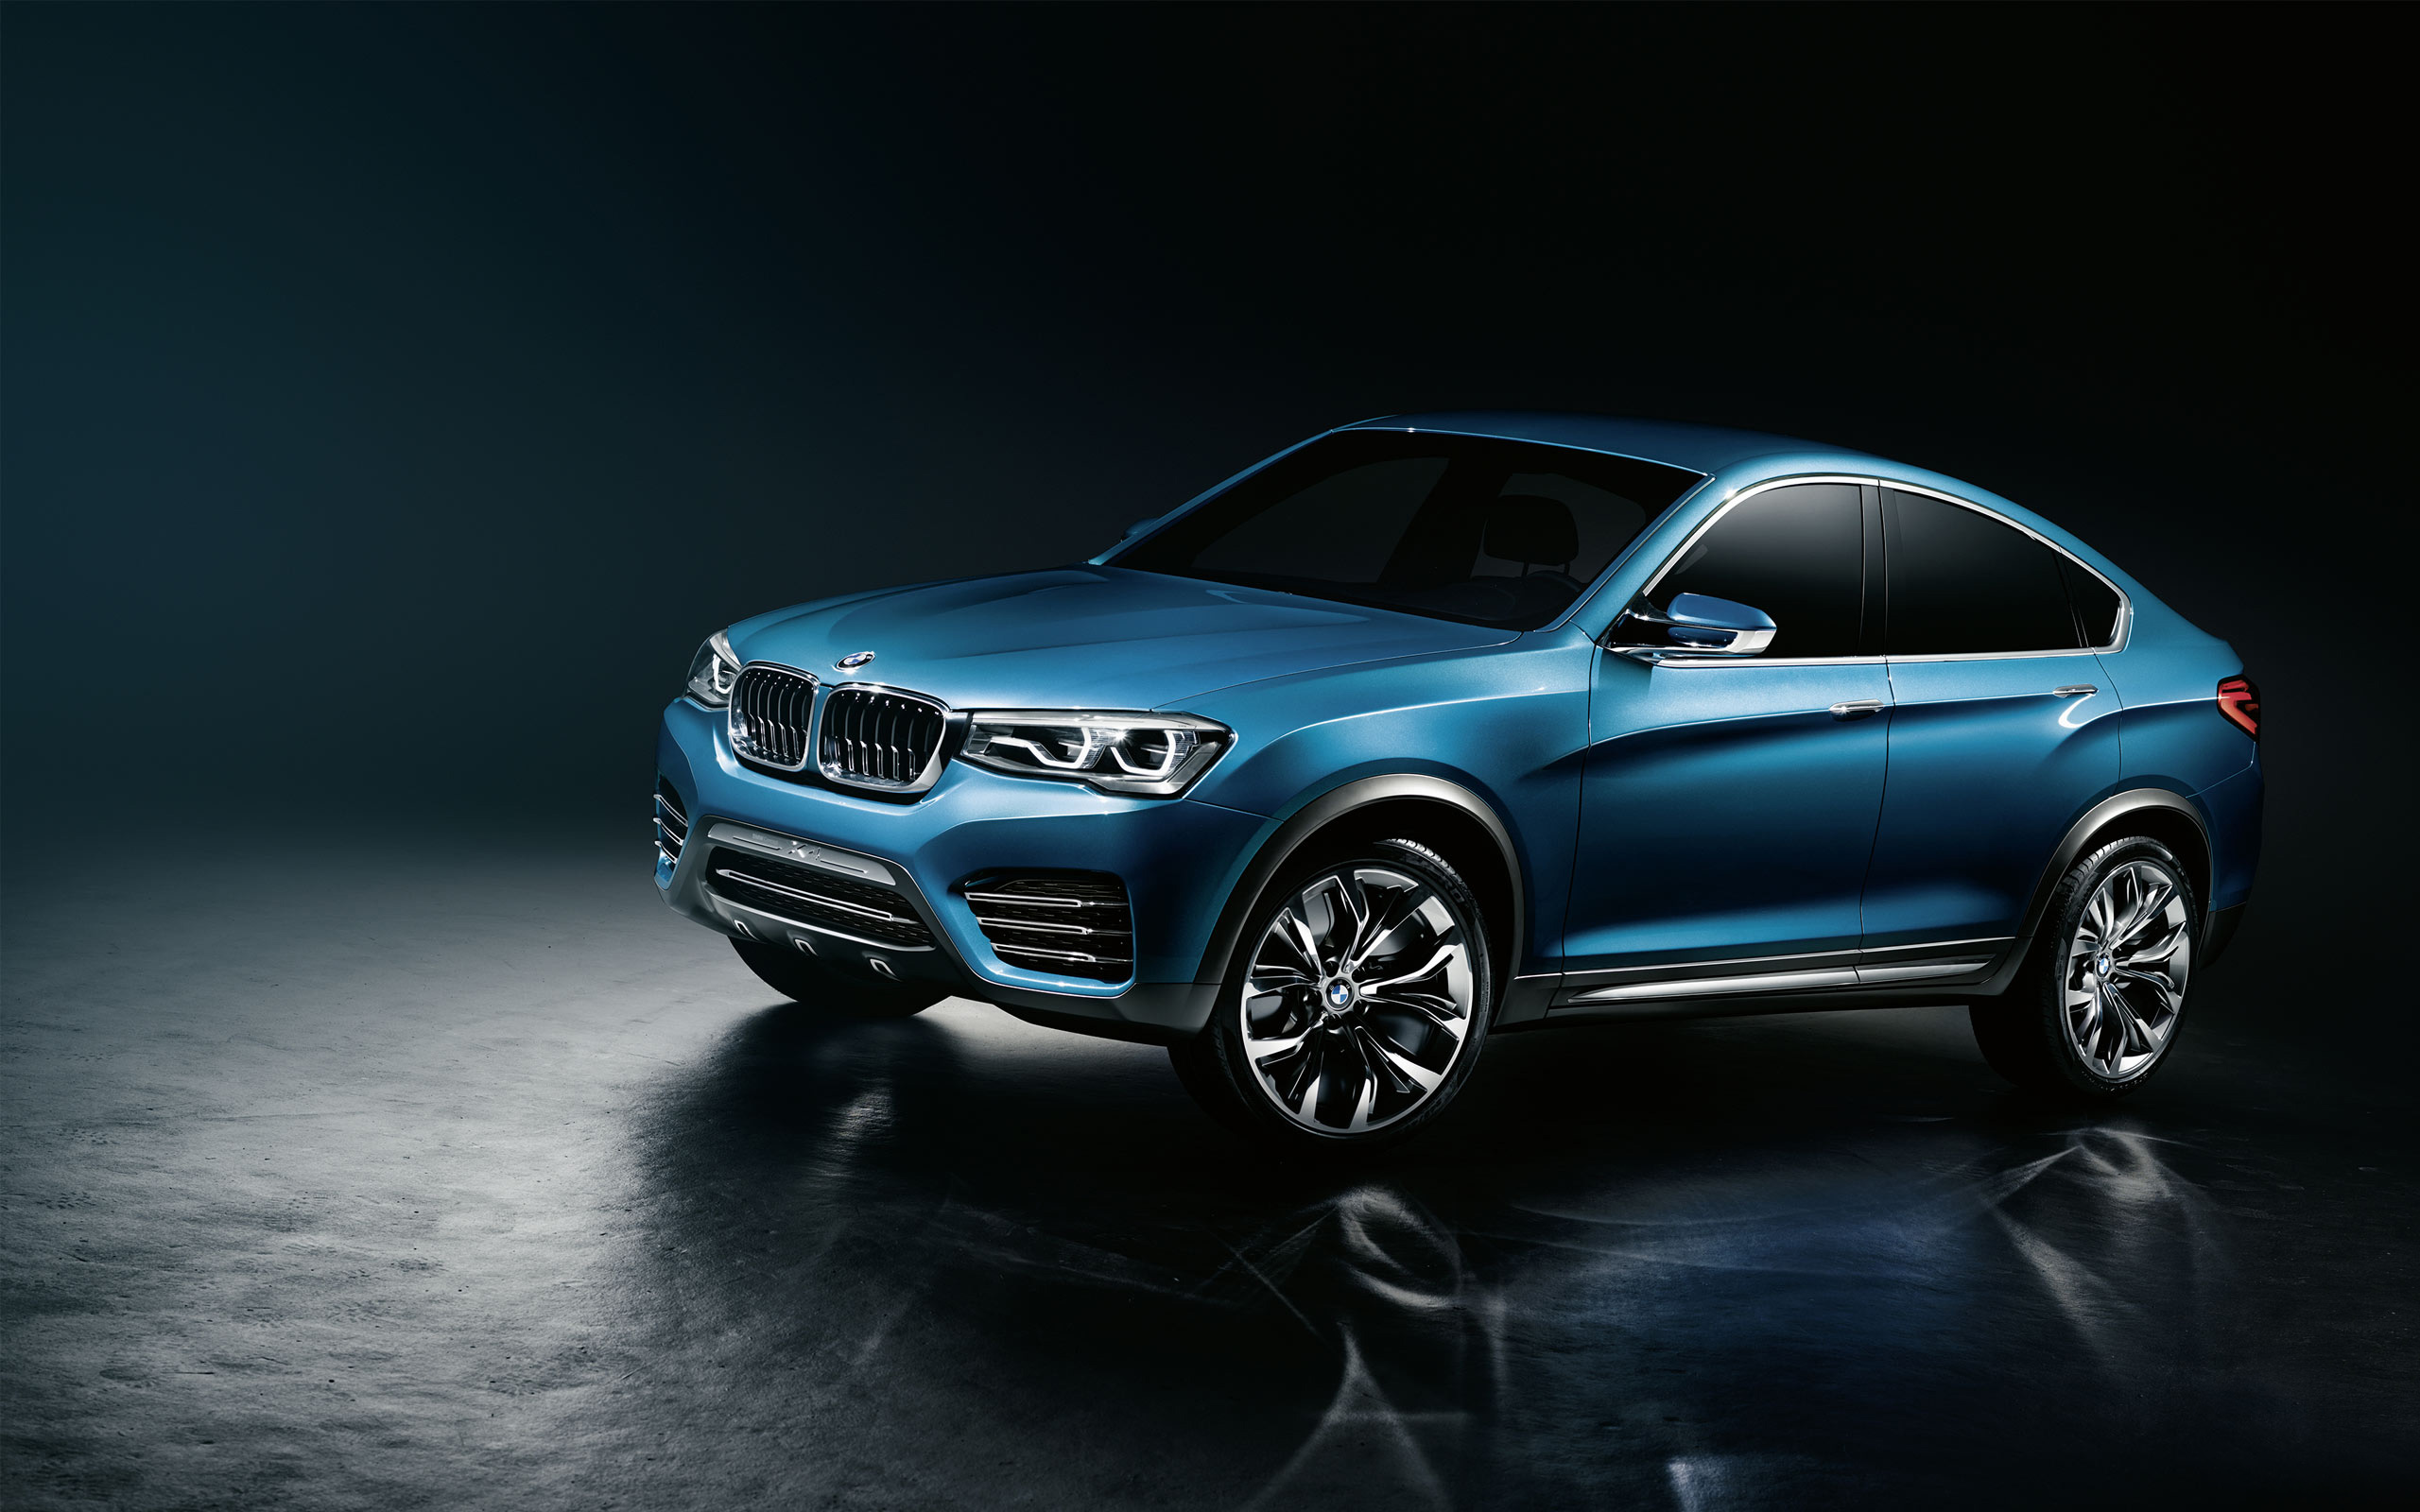 2560x1600 - BMW X4 Wallpapers 5